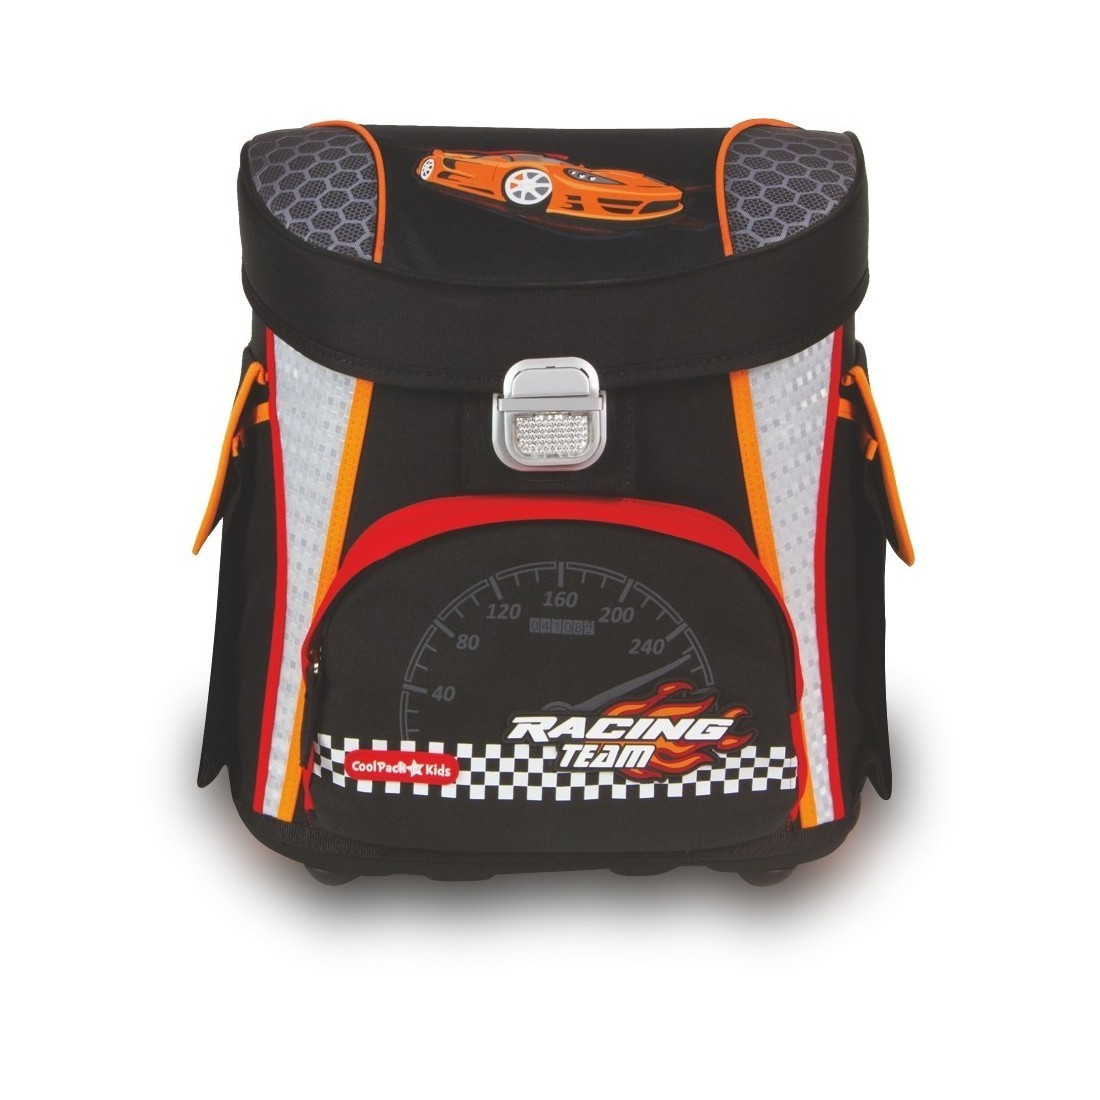 TORNISTER COOLPACK CP RACING CZARNY Z AUTEM - plecak-tornister.pl